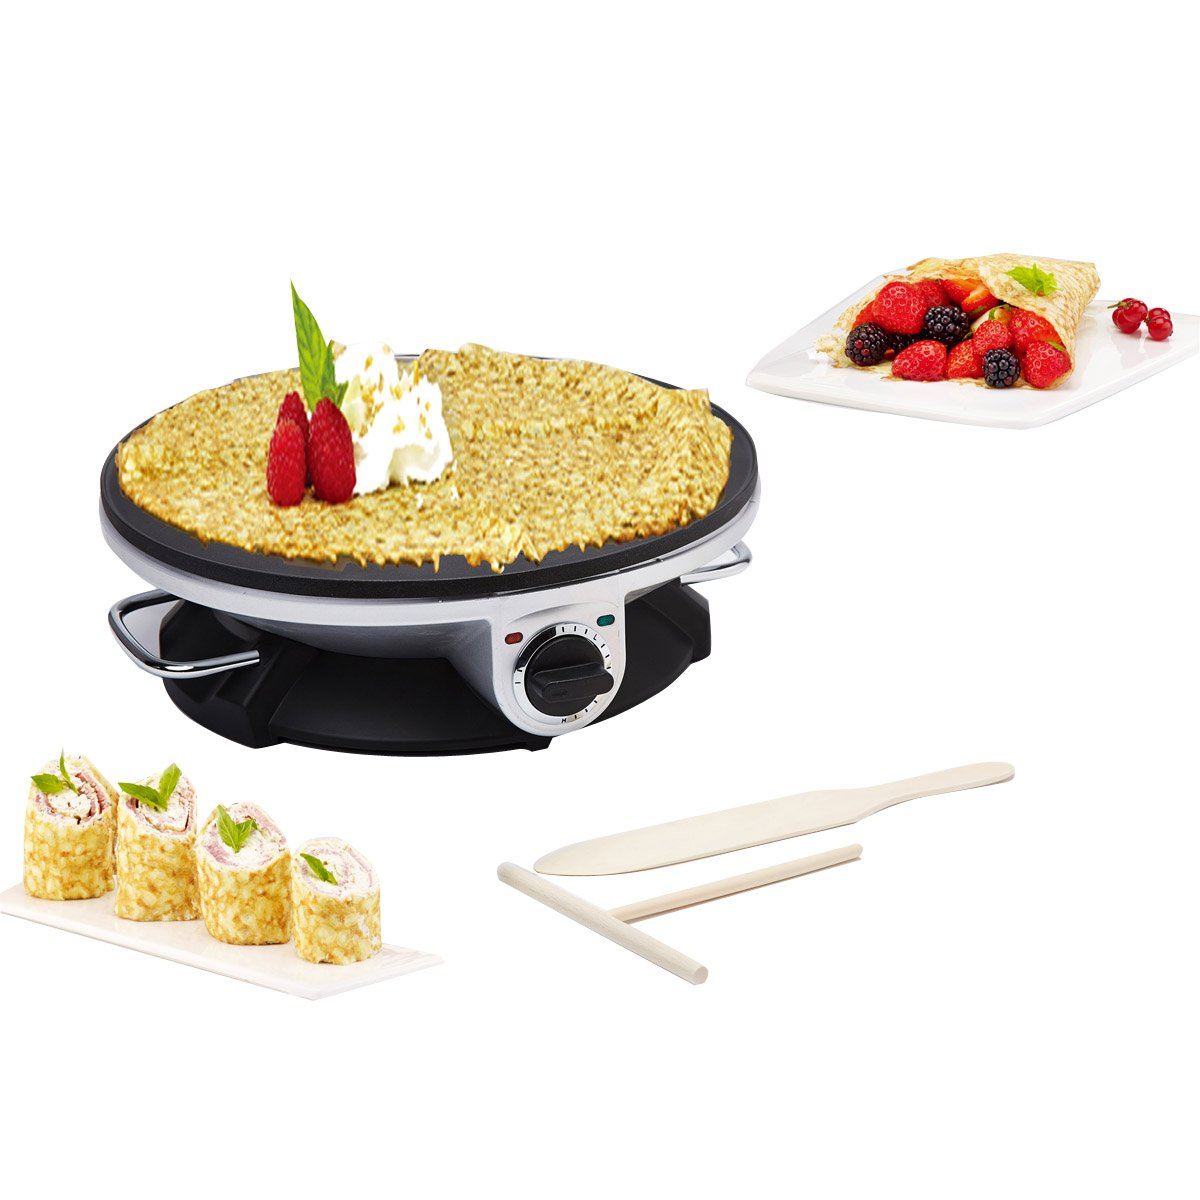 Health and Home No Edge Crepe Maker - 13 Inch Crepe Maker & Electric Griddle - Non-stick Pancake Maker- Waffle Maker- Crepe Pan